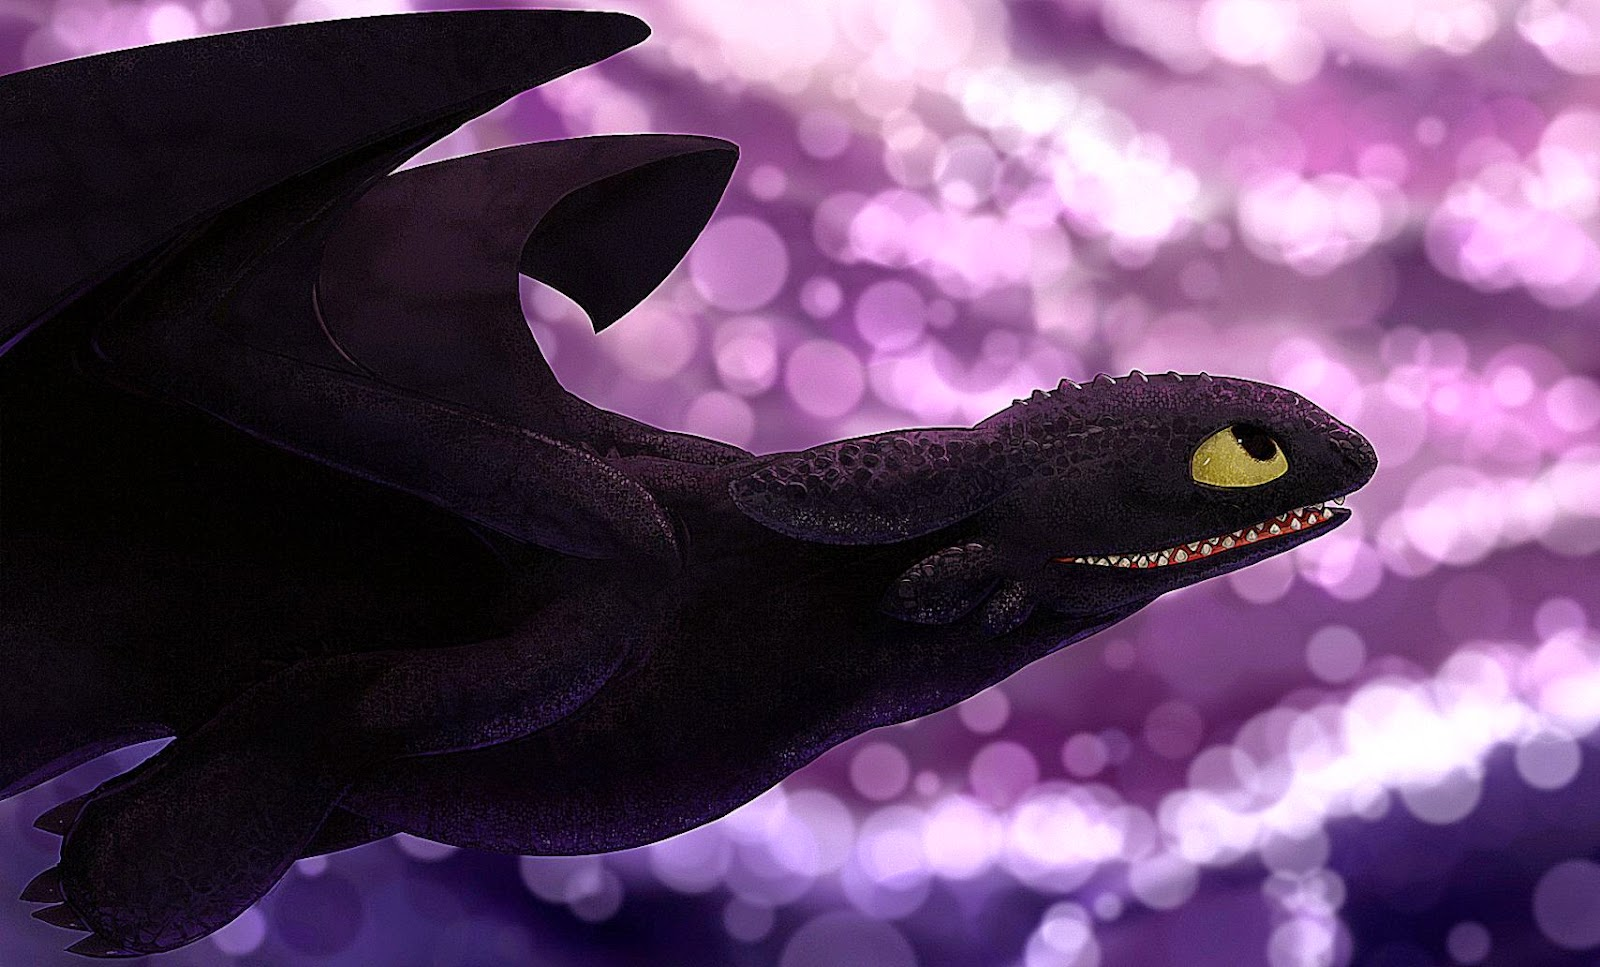 Toothless the dragon wallpaper cool hd wallpapers - Toothless wallpaper ...